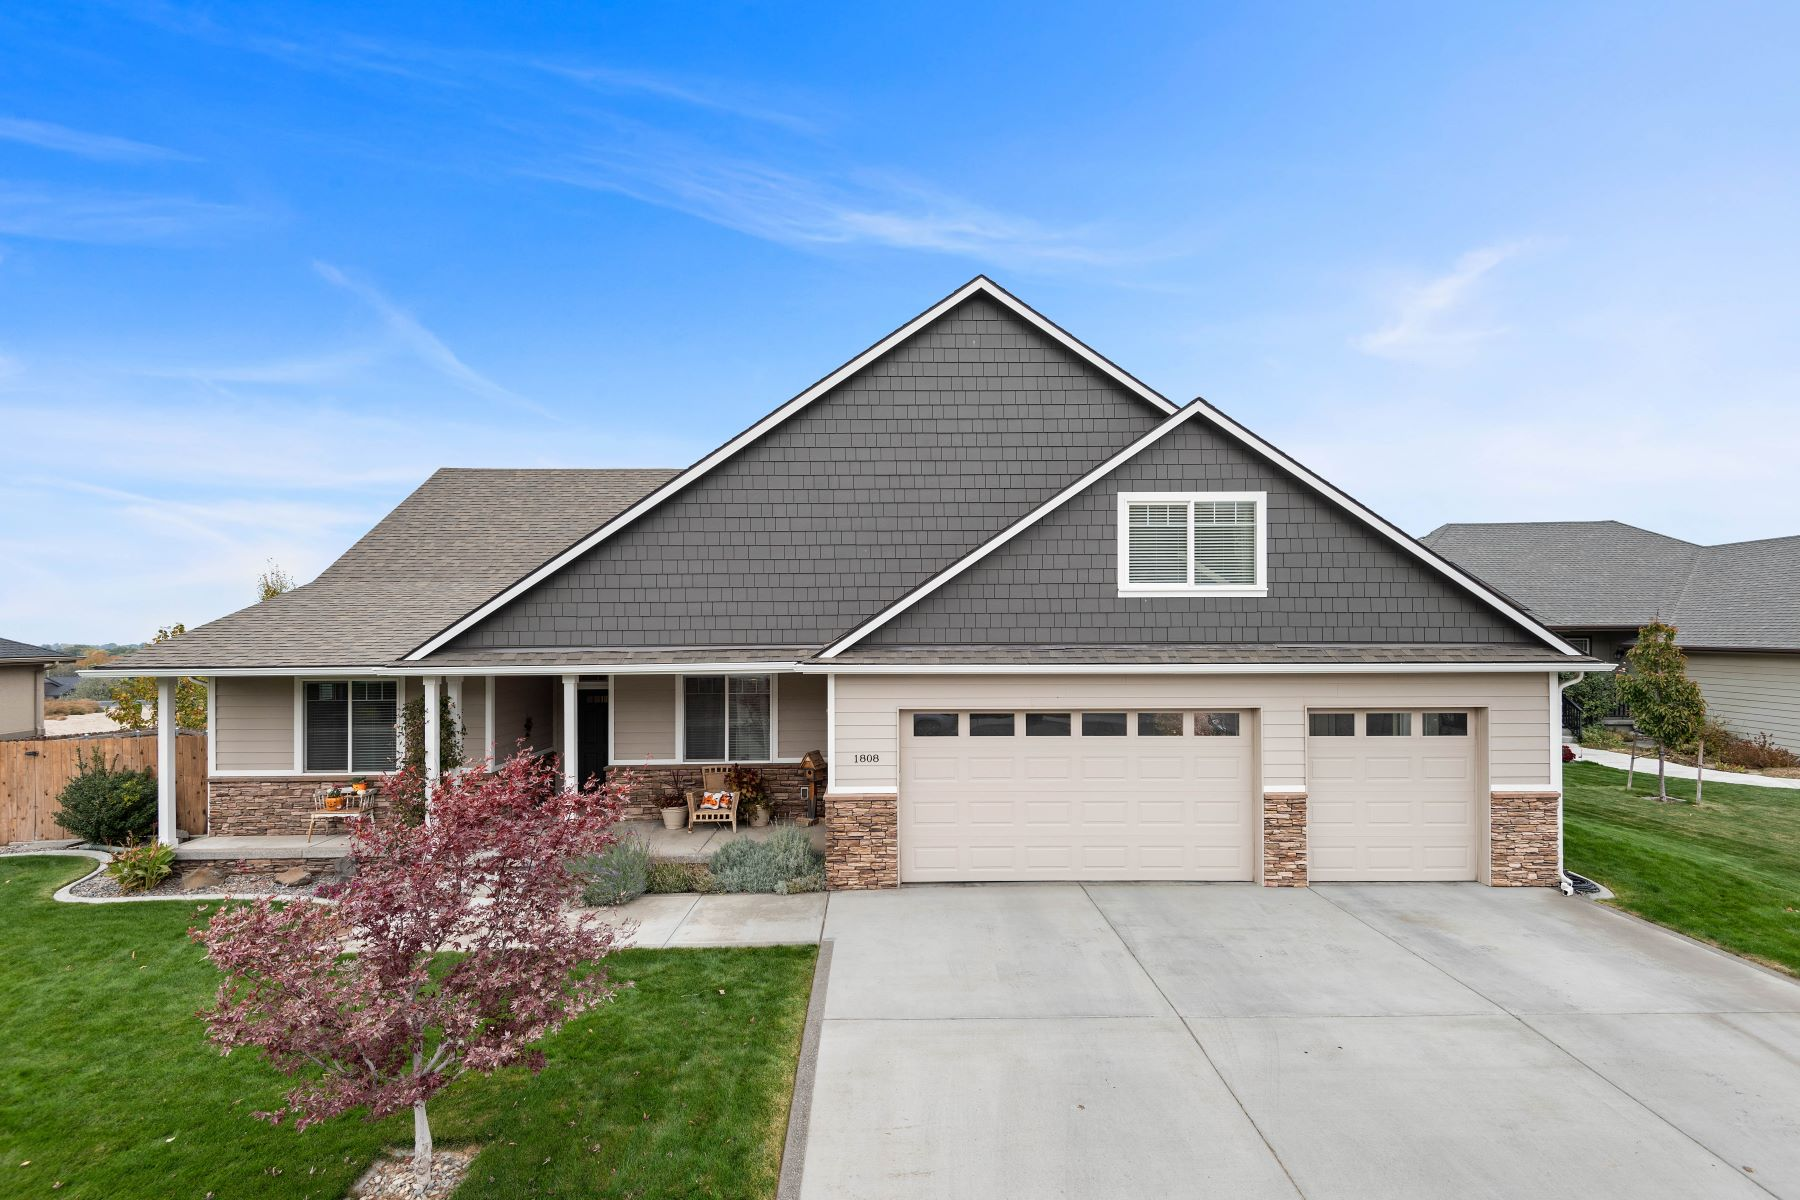 Single Family Homes for Sale at Stunning Views 1808 W 51st Avenue Kennewick, Washington 99337 United States